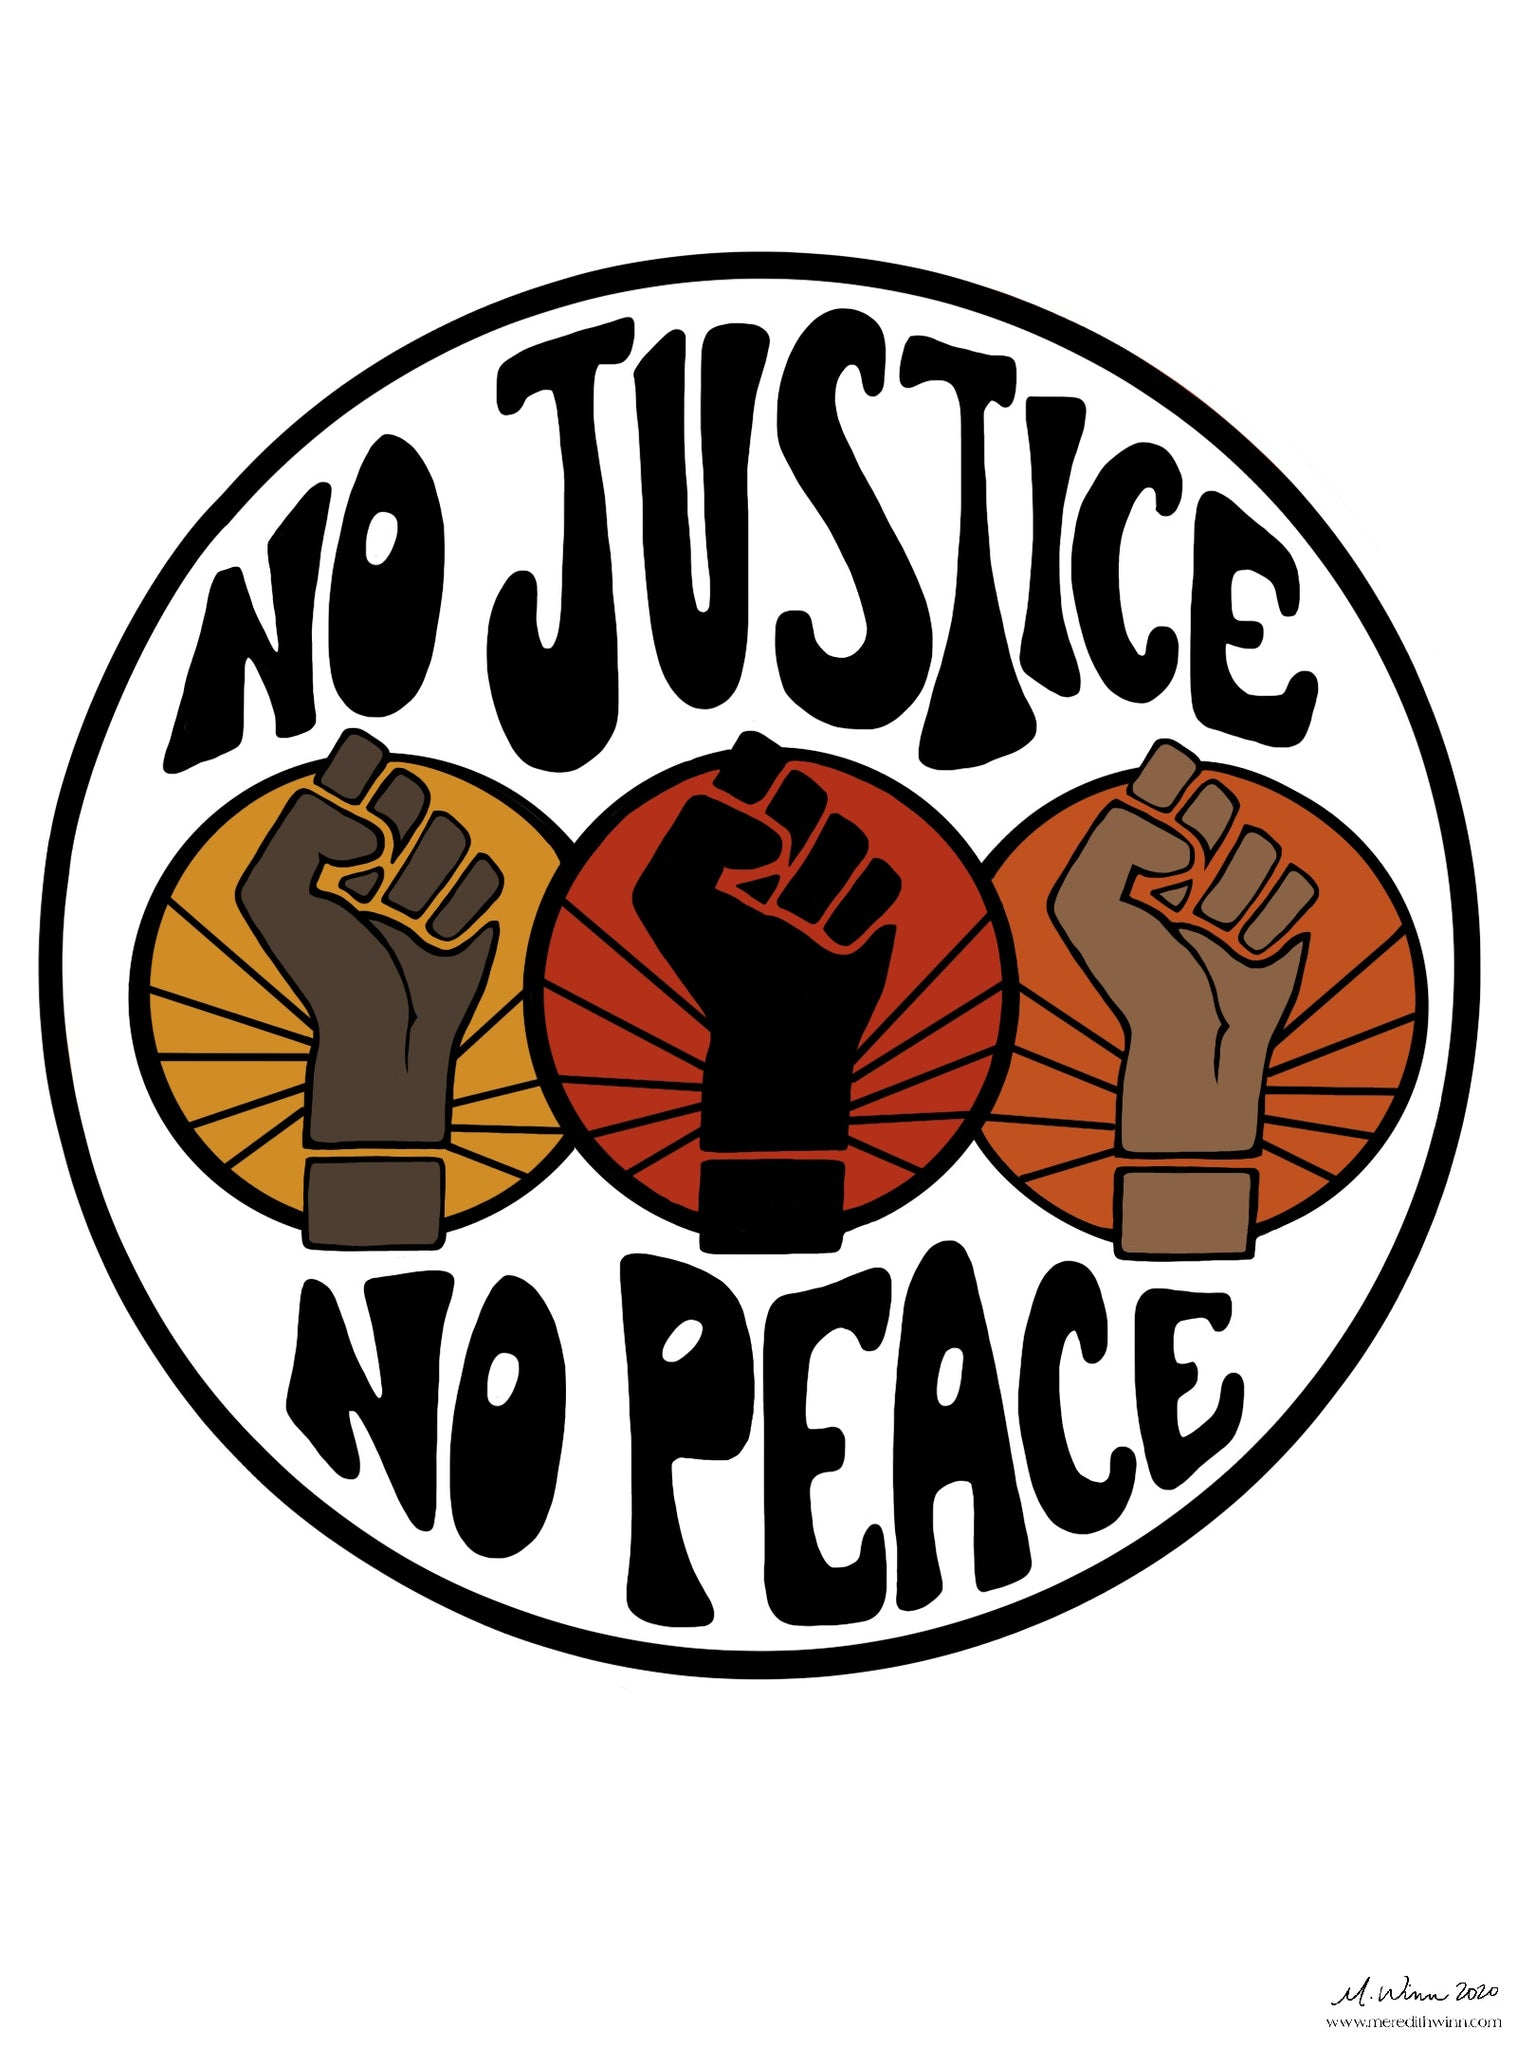 No Justice No Peace - FREE downloadable art